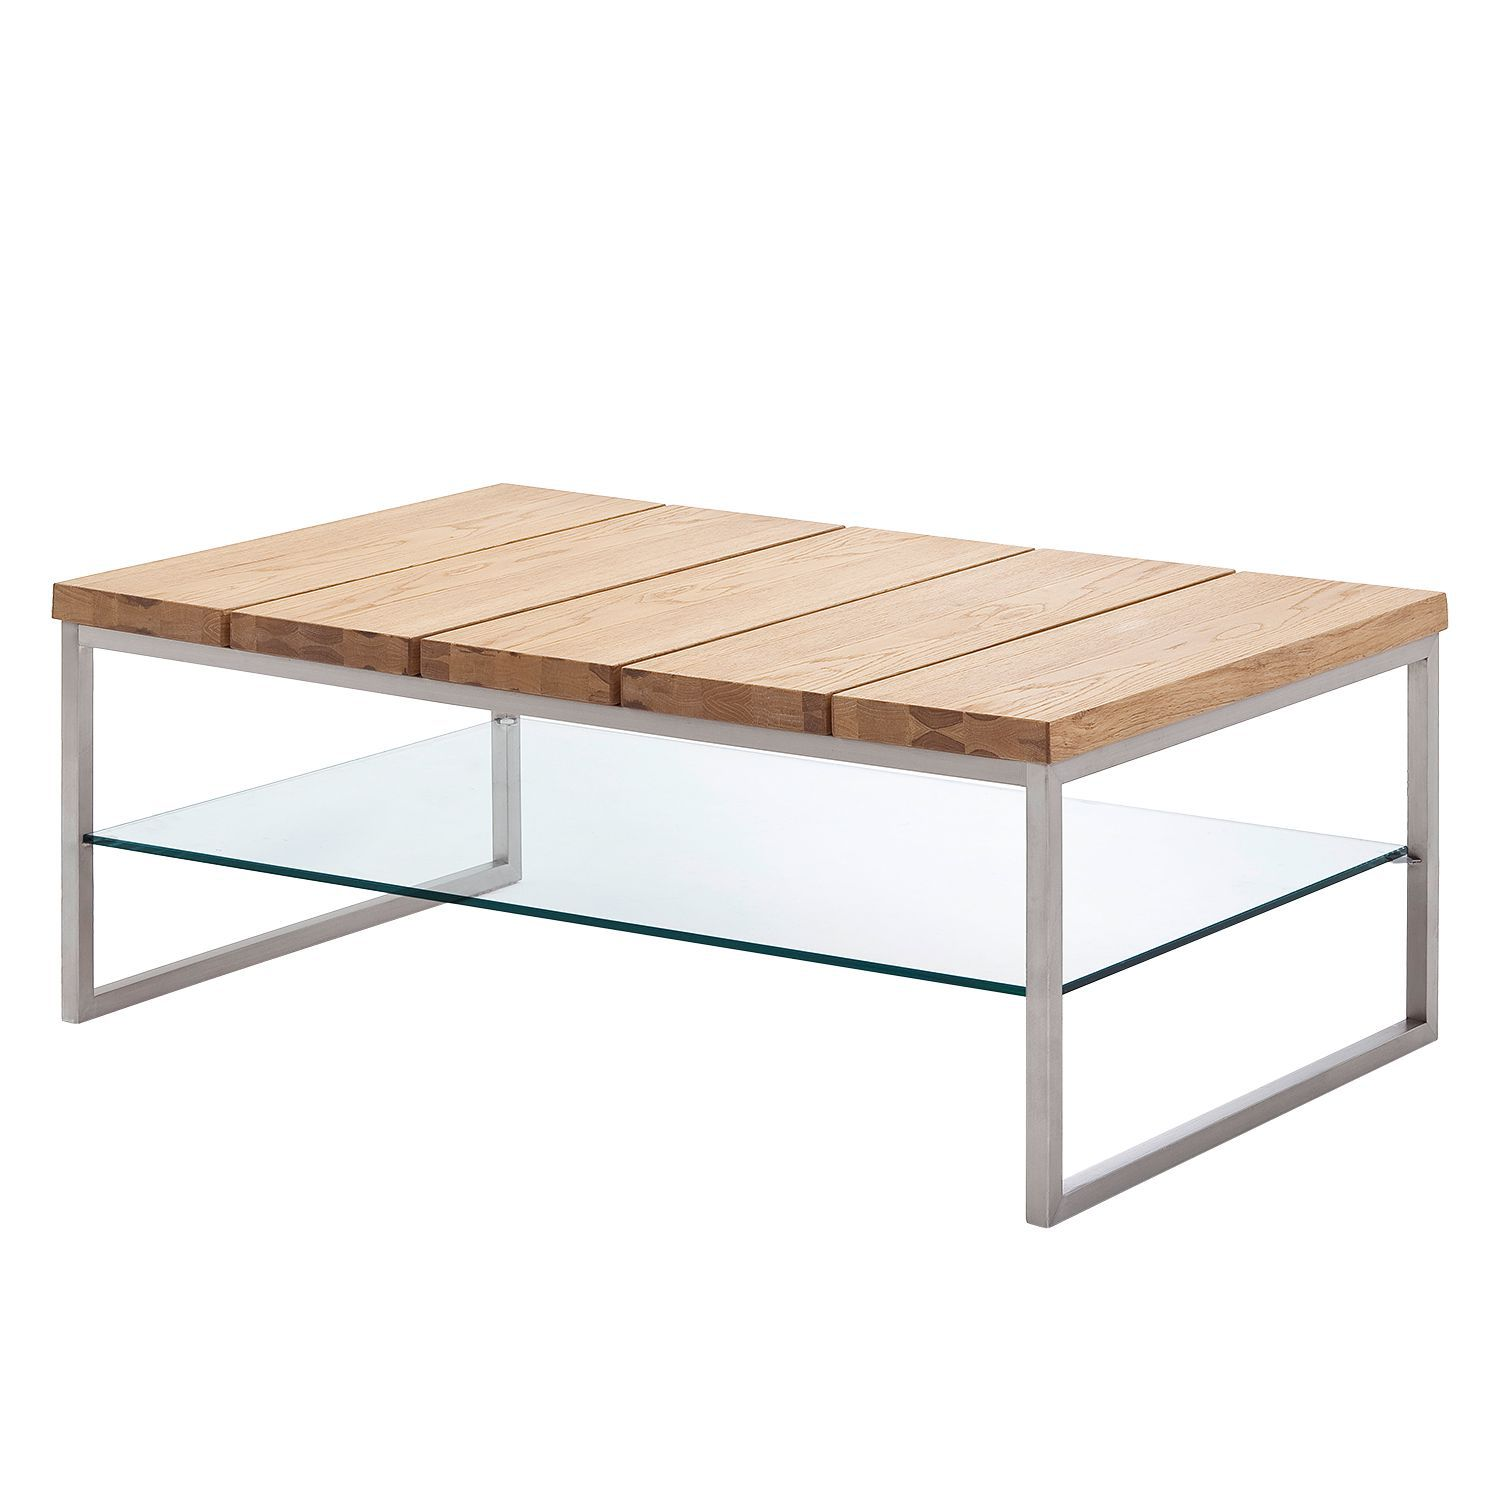 Table basse Envie